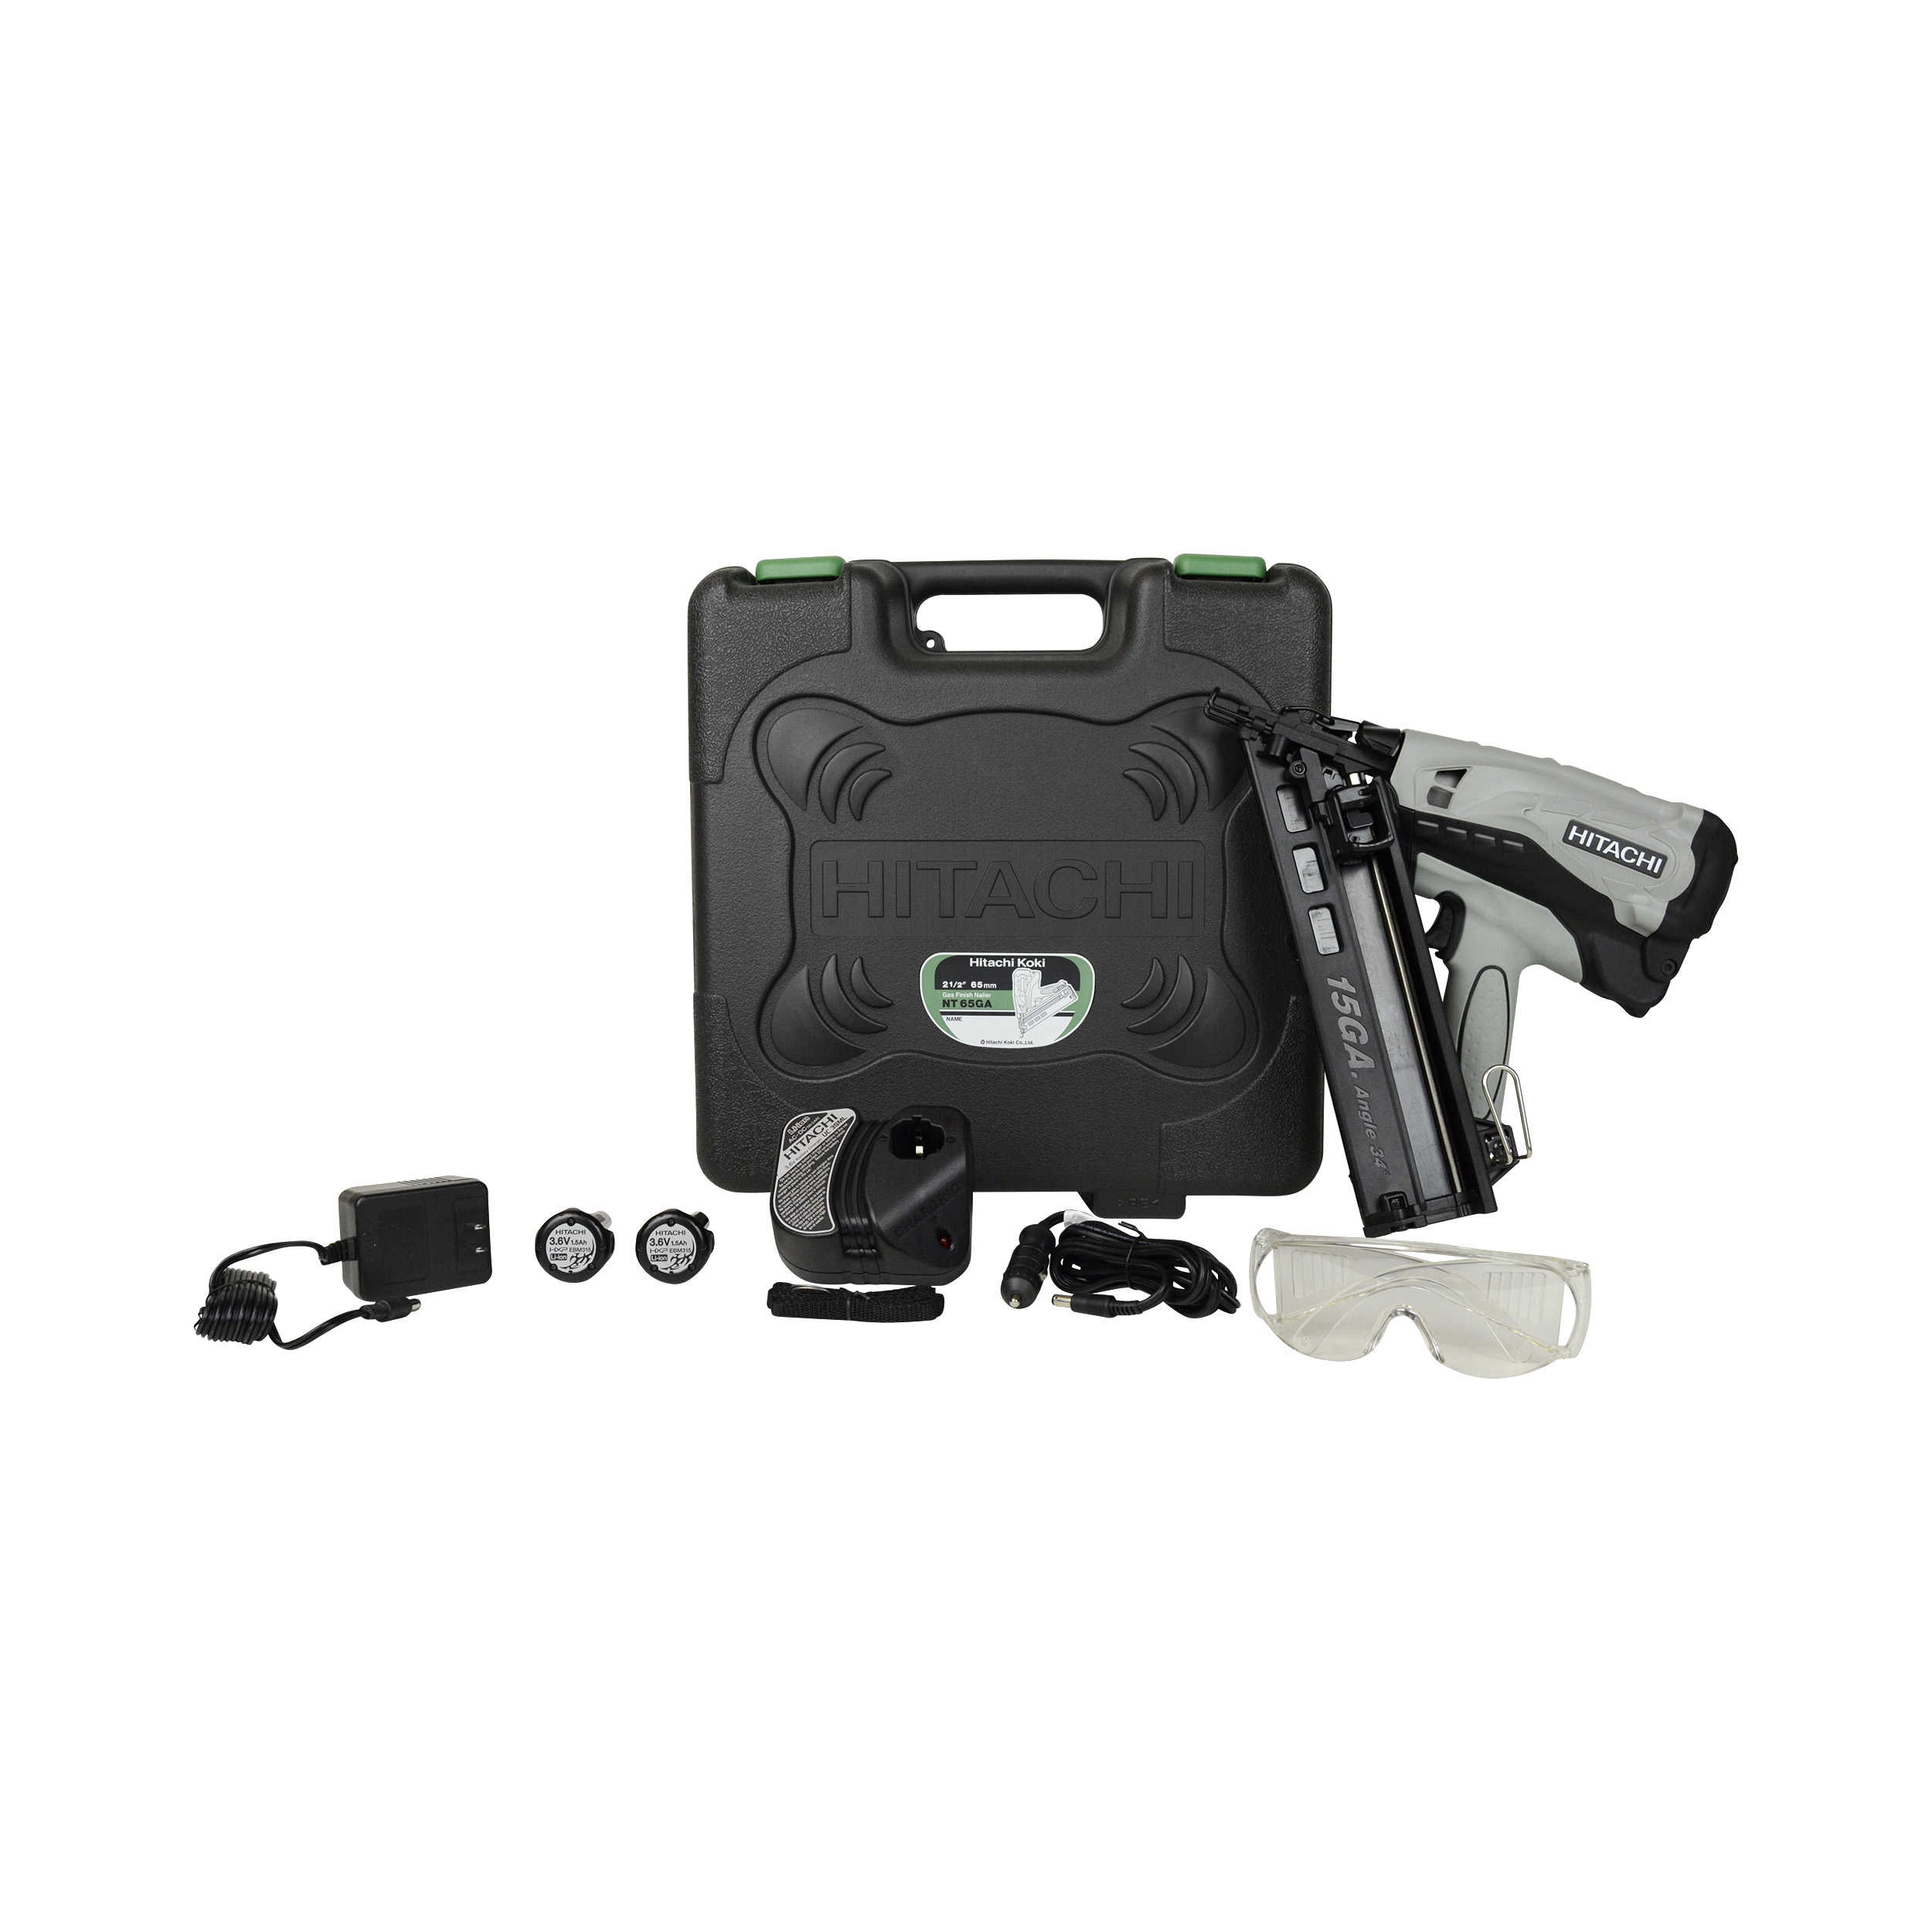 Hitachi NT65GAP9 3.6V 15 Gauge 2-1/2' Gas Powered Angle Finish Nailer Kit